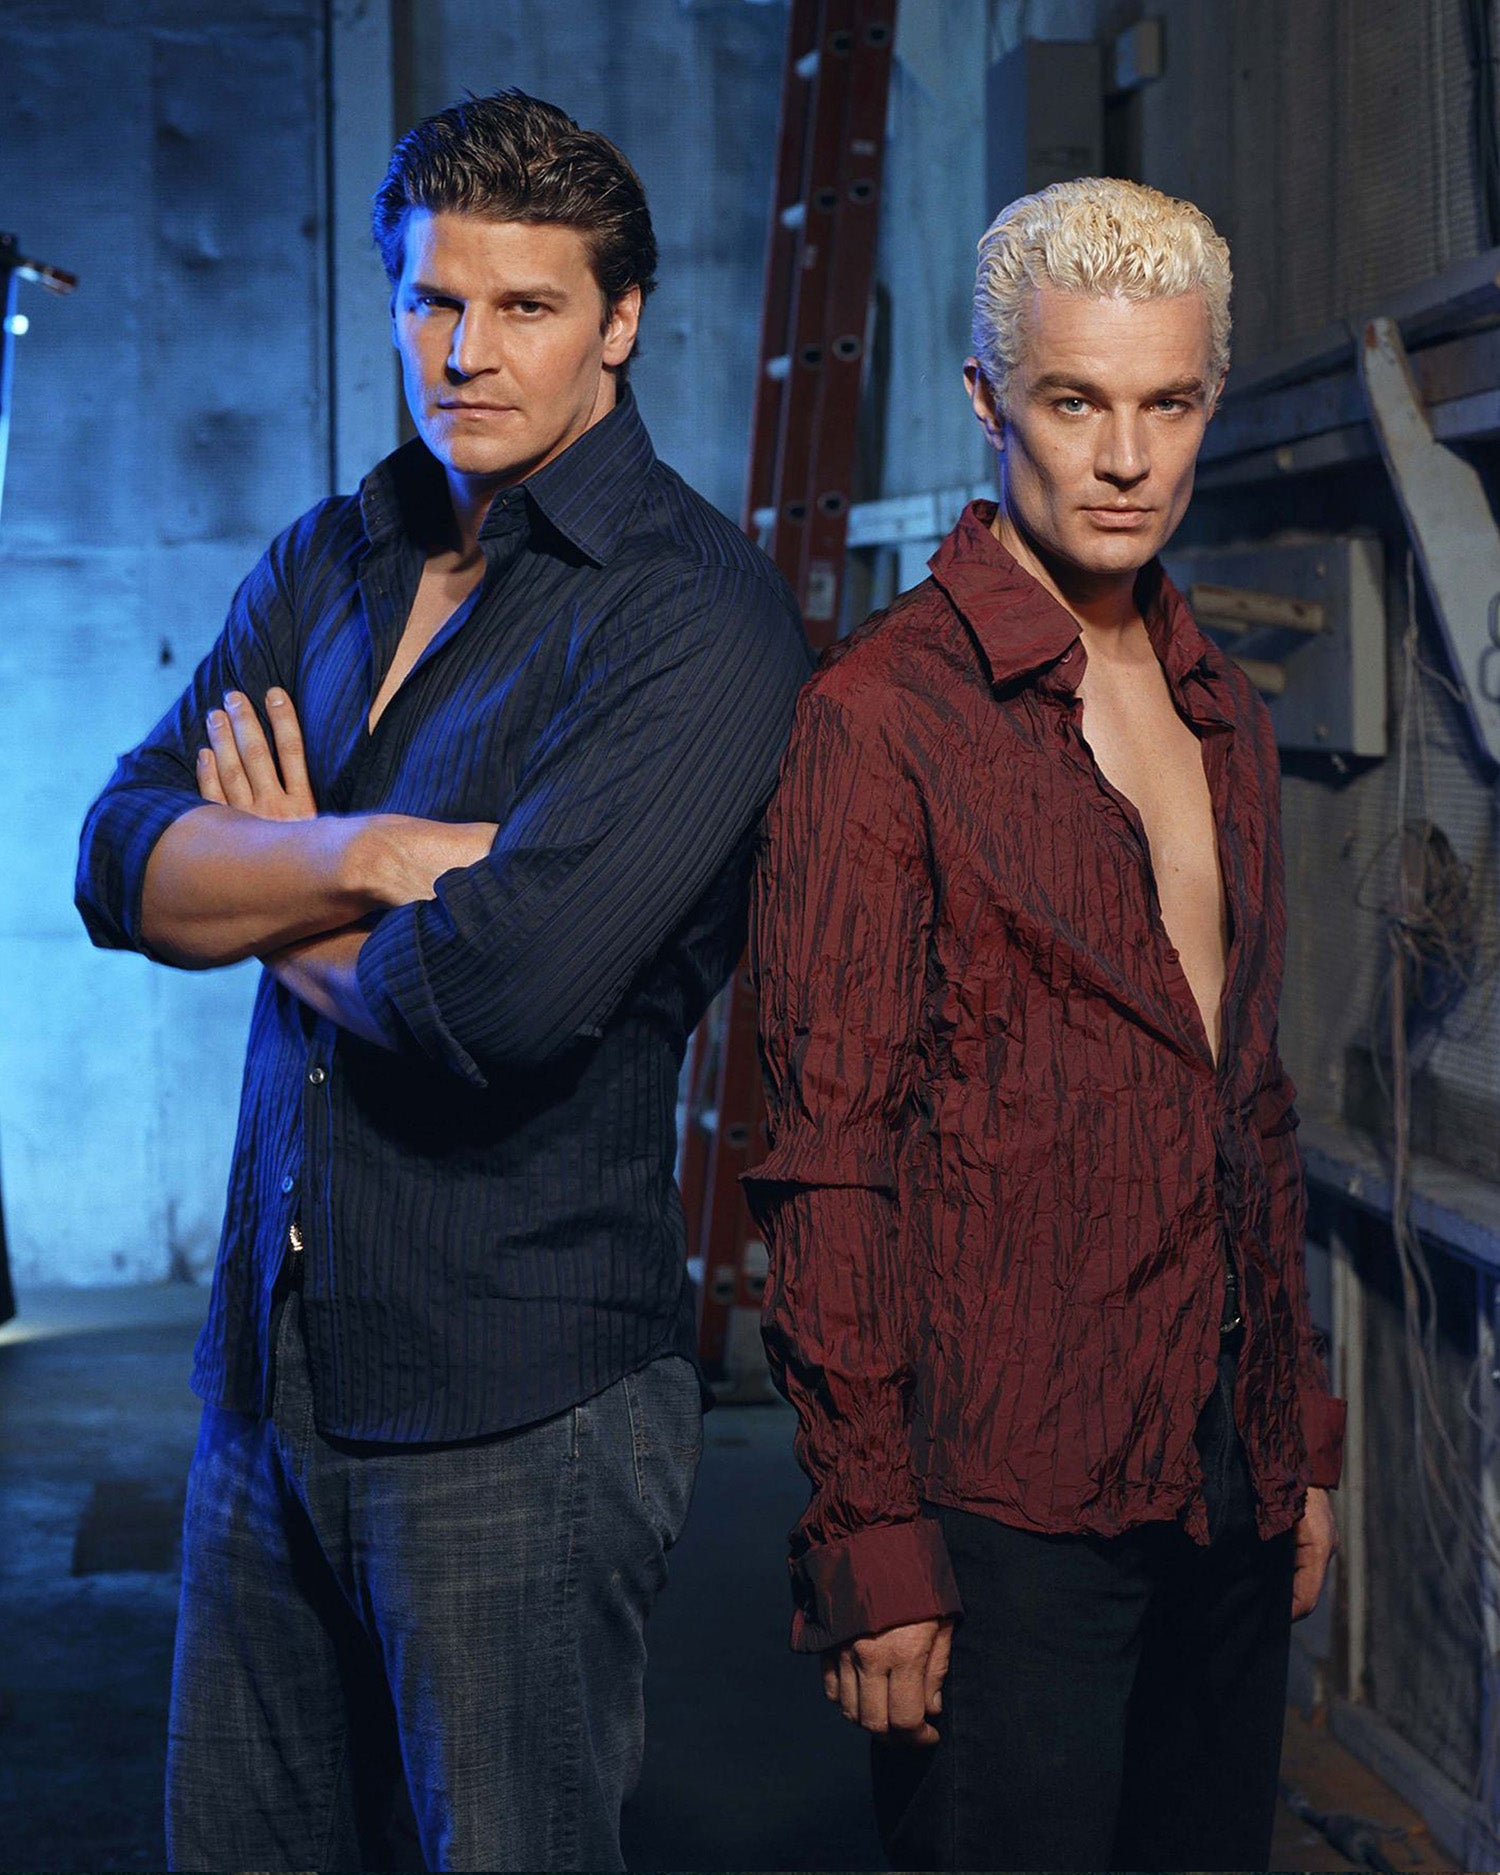 James Marsters: Personalized Autograph Signing on More Photos, January 30th